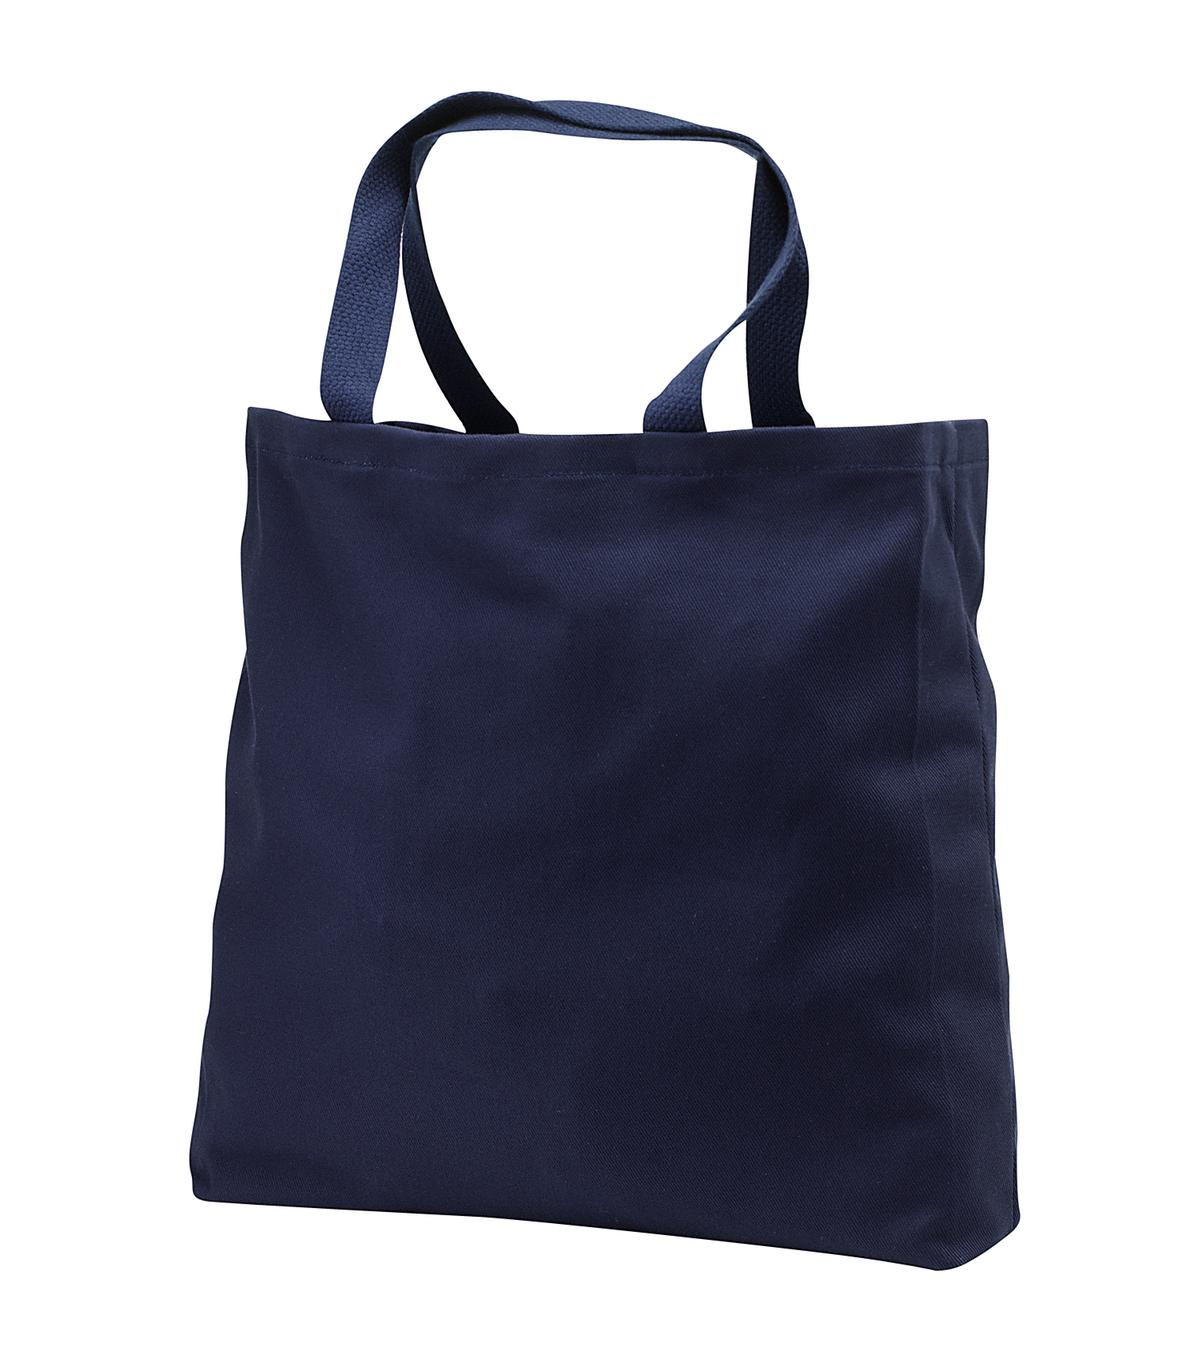 Port Authority ®  - Convention Tote.  B050 - Navy